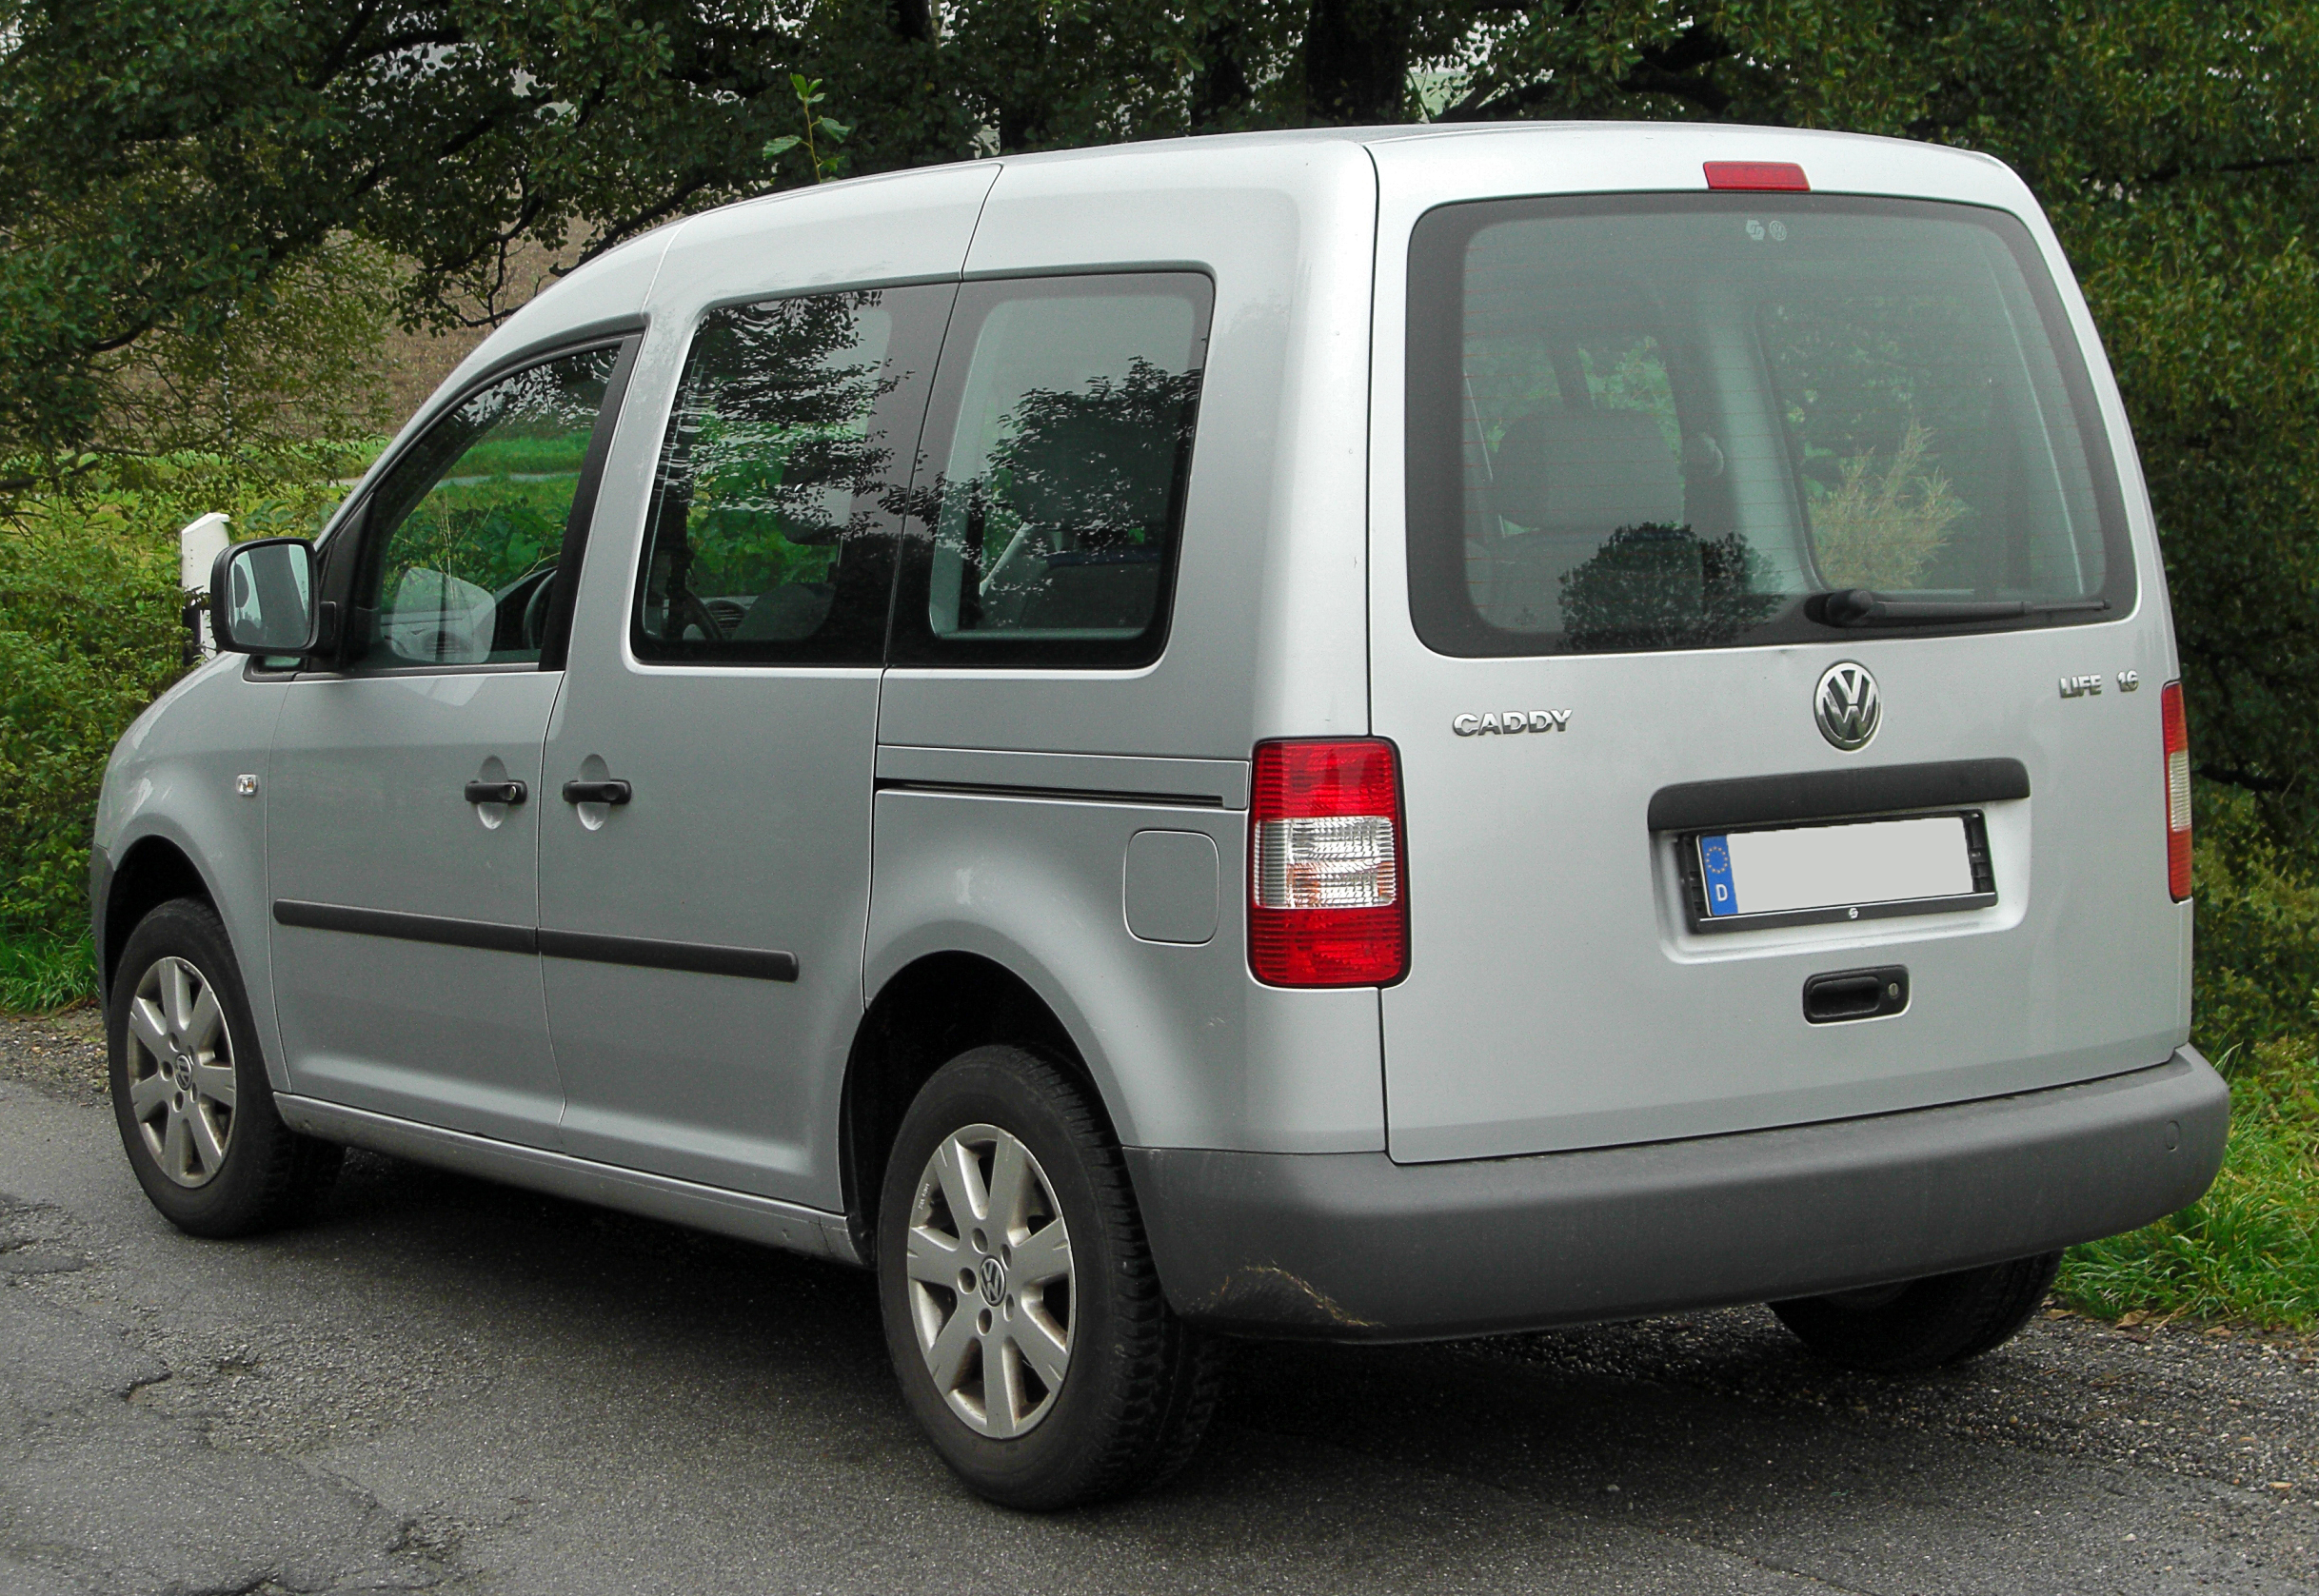 volkswagen caddy life 1.6 #1